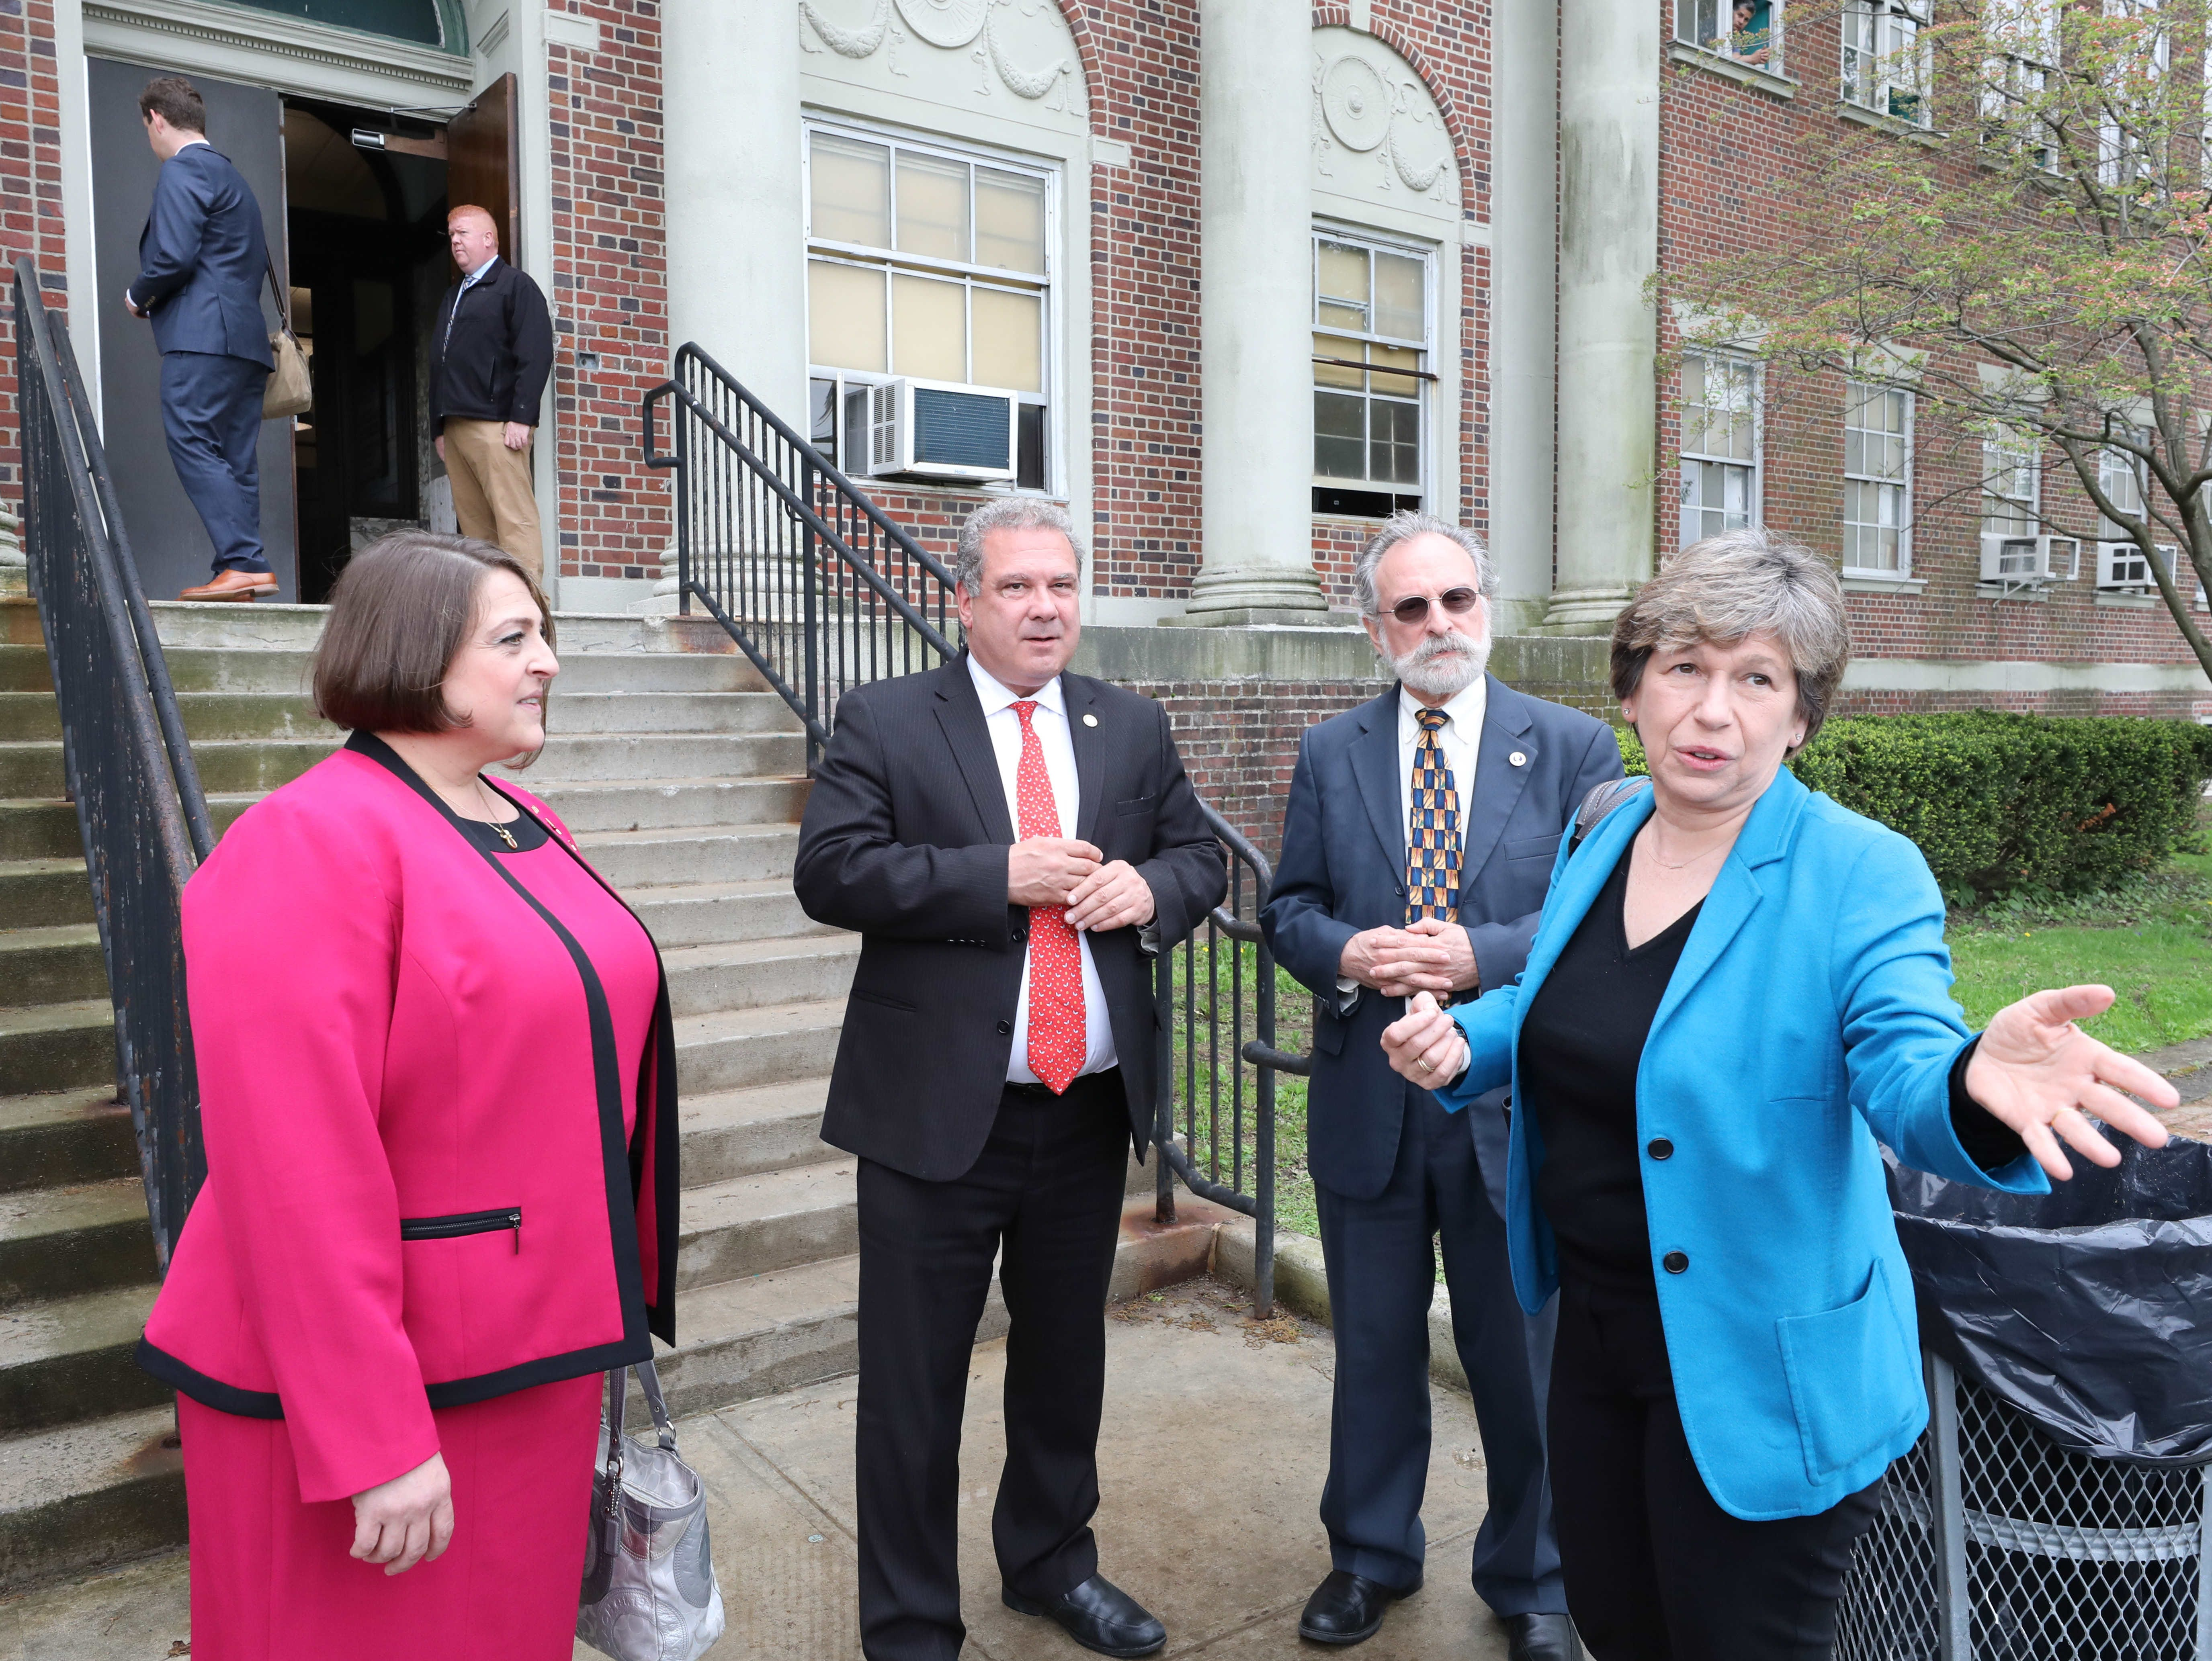 Samantha Rosado-Ciriello, Yonkers Federation of Teachers president; Yonkers Mayor Mike Spano; Yonkers City Council Majority Leader Michael Sabatino and Randi Weingarten, the president of the American Federation of Teachers, attend a school tour at Gorton High School in Yonkers, May 10, 2019.